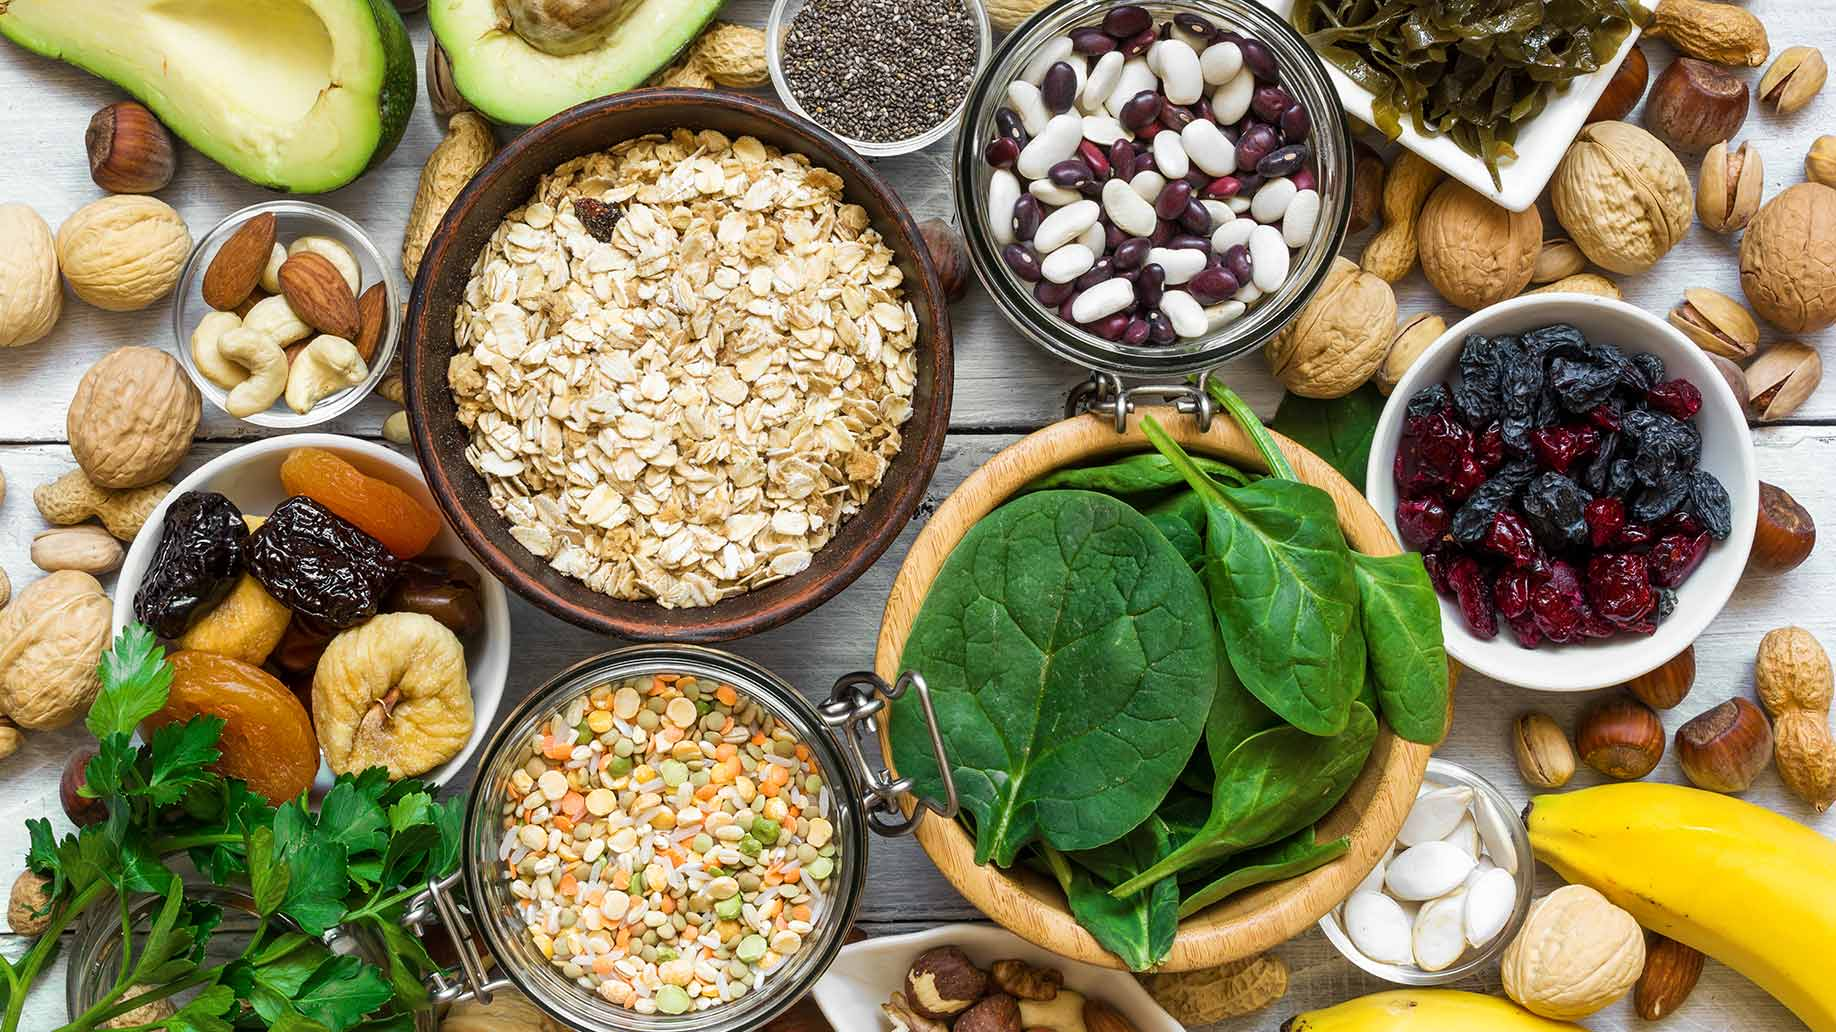 magnesium beans greens nuts seeds increase boost energy levels natural remedies.